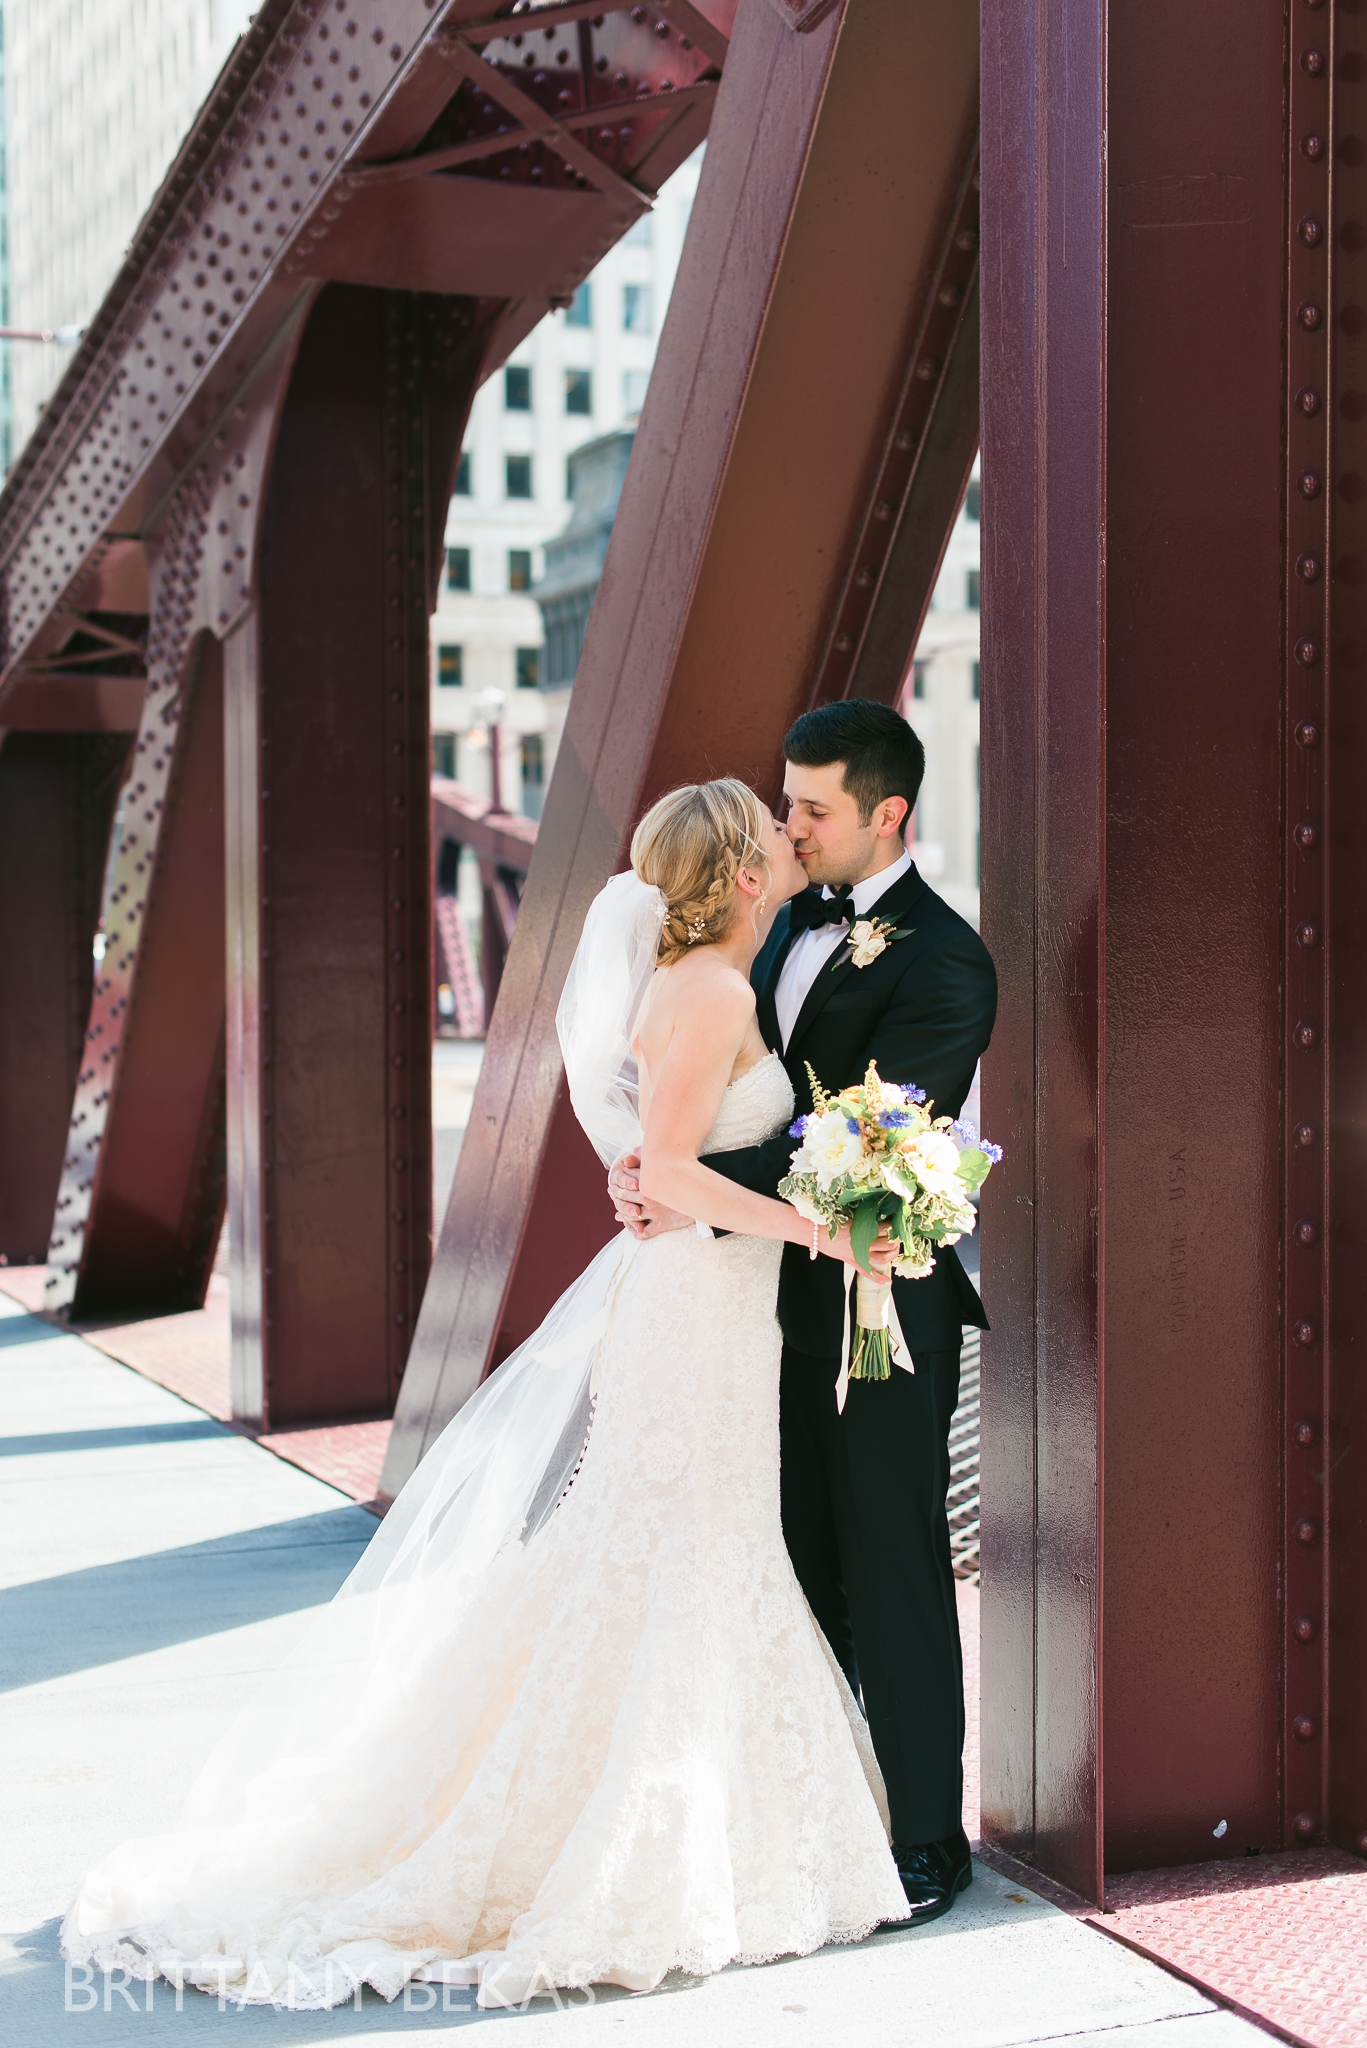 The Murphy Wedding Photos - Brittany Bekas Photography_0025